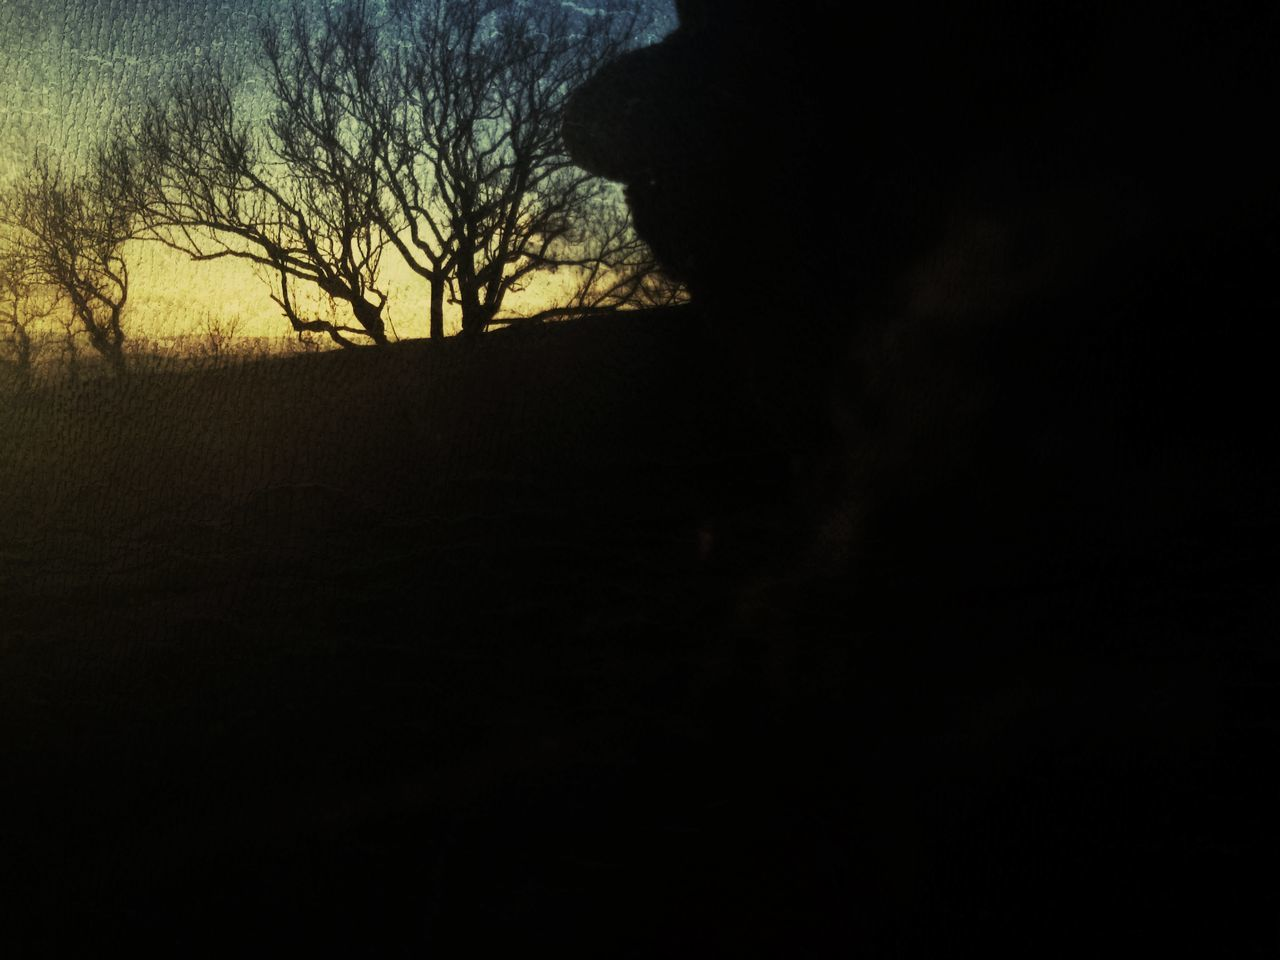 silhouette, nature, landscape, bare tree, tree, beauty in nature, scenics, outdoors, no people, sky, day, animal themes, mammal